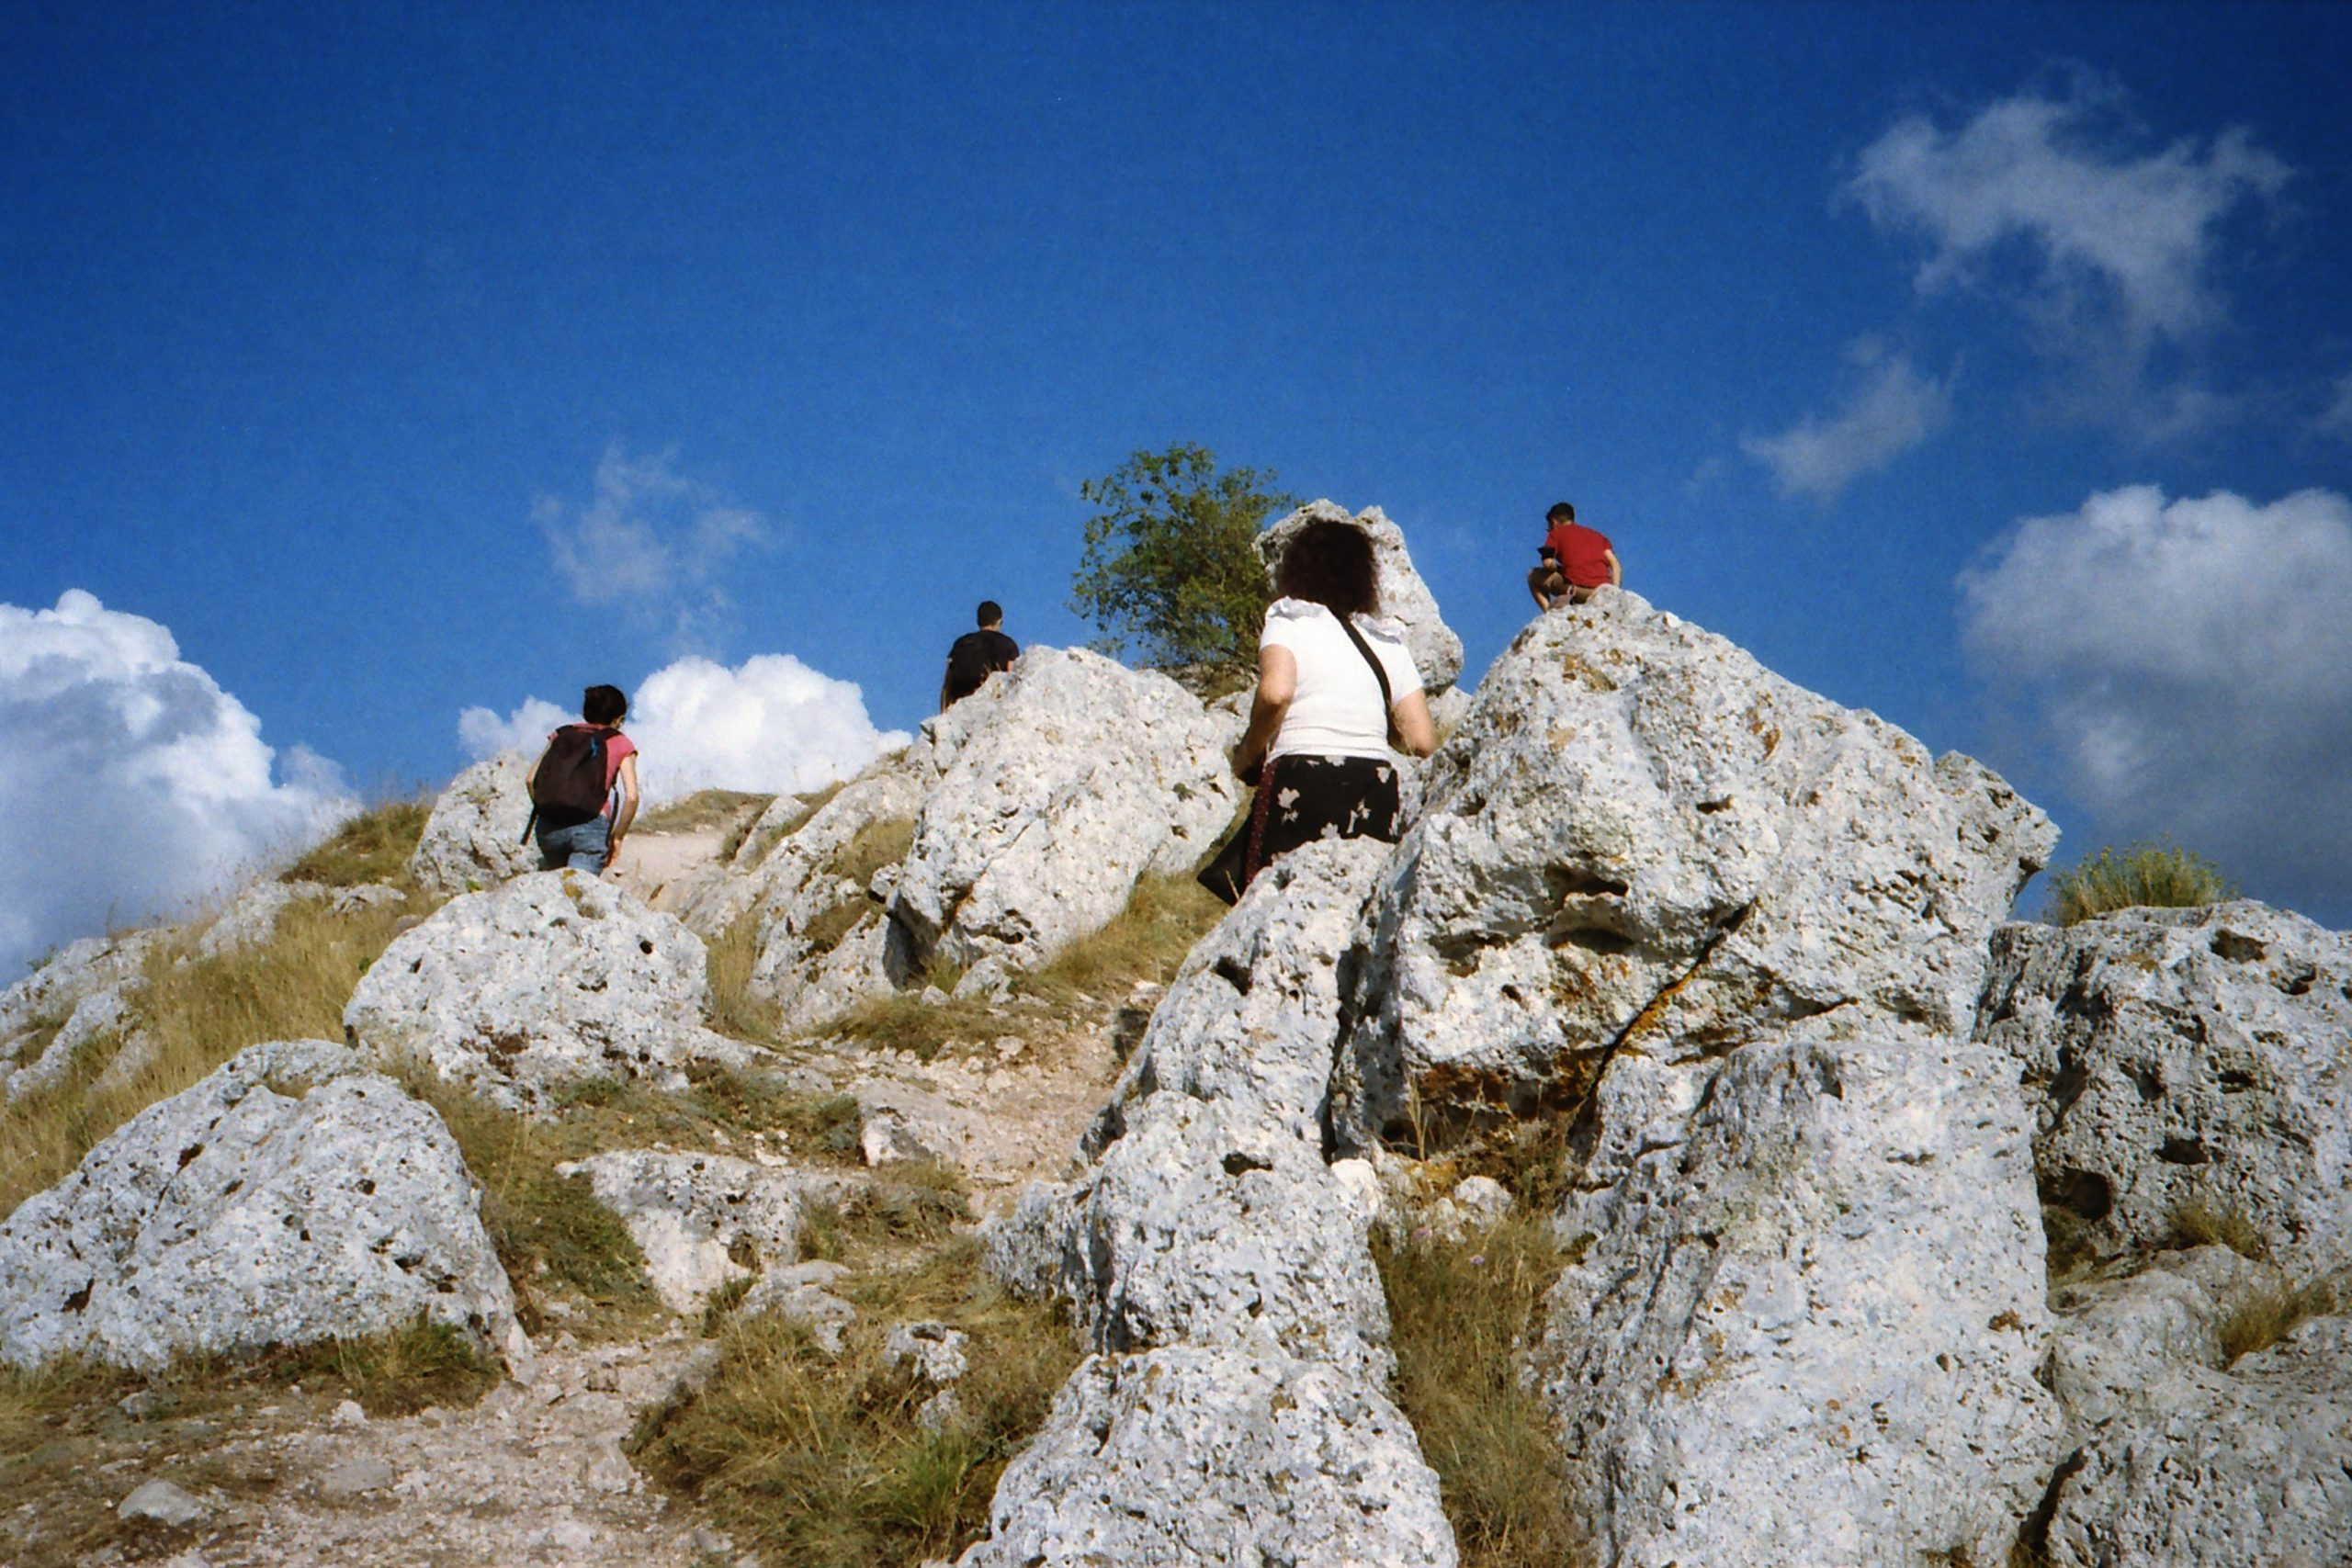 Hikers in the Appenine mountains